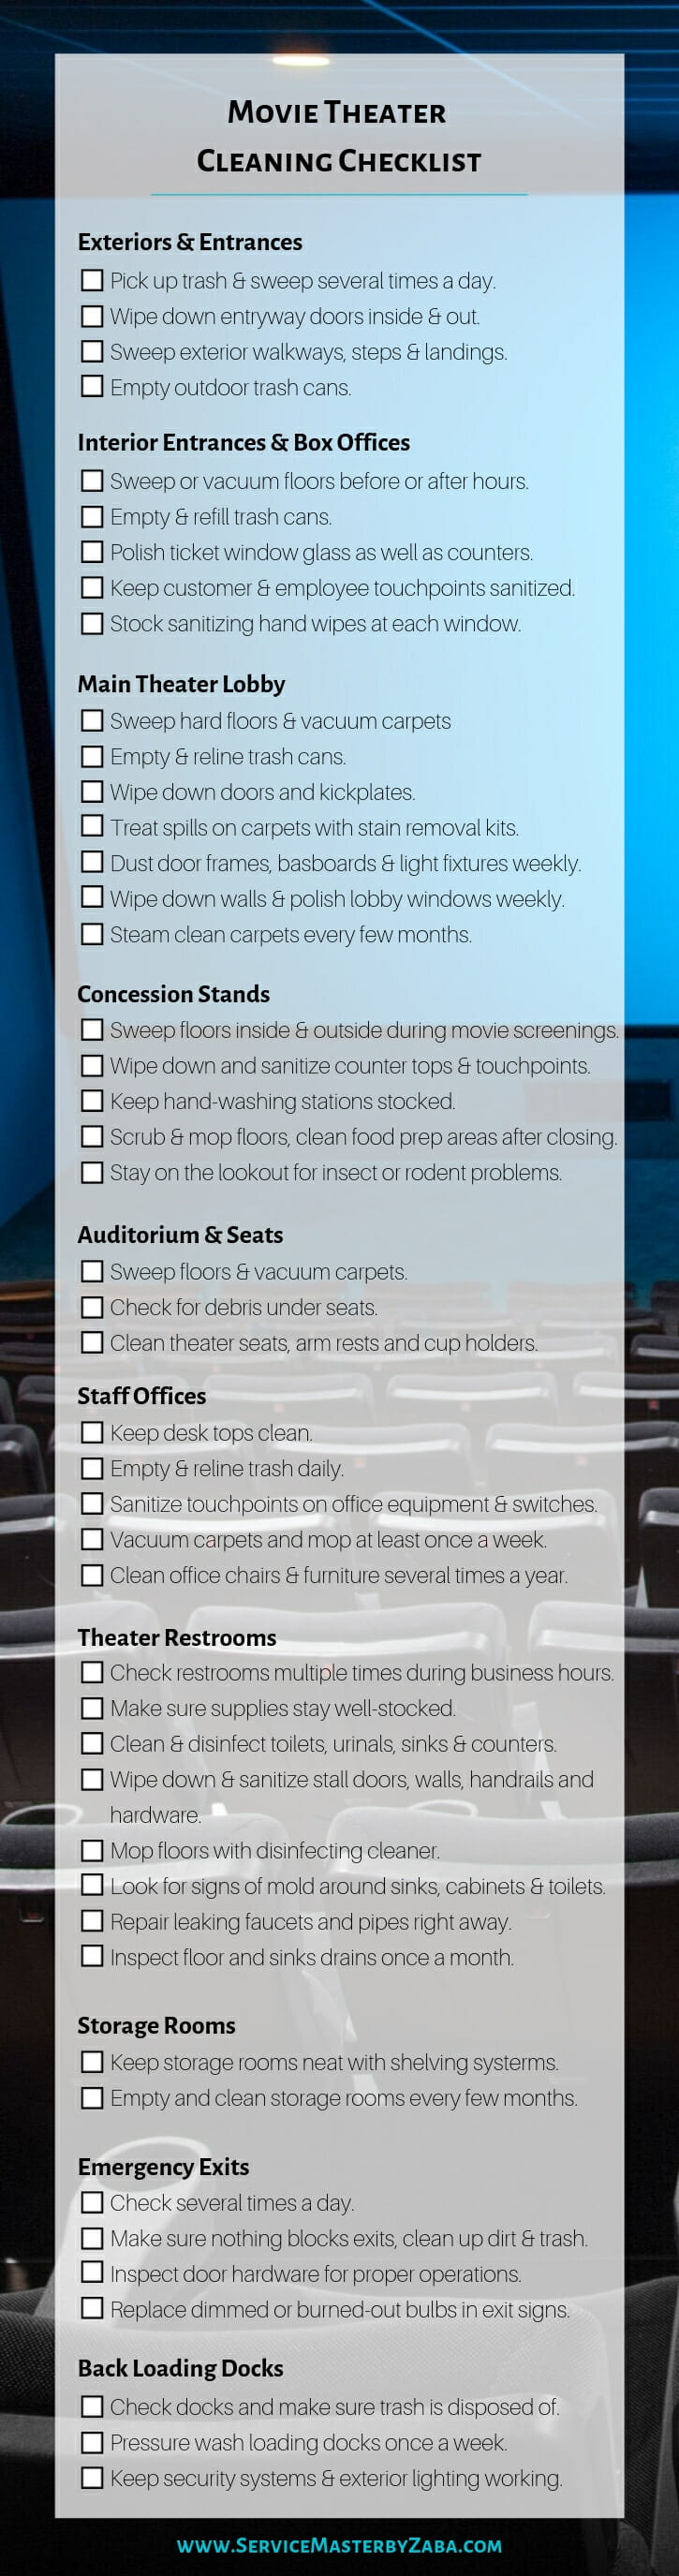 movie theater cleaning checklist